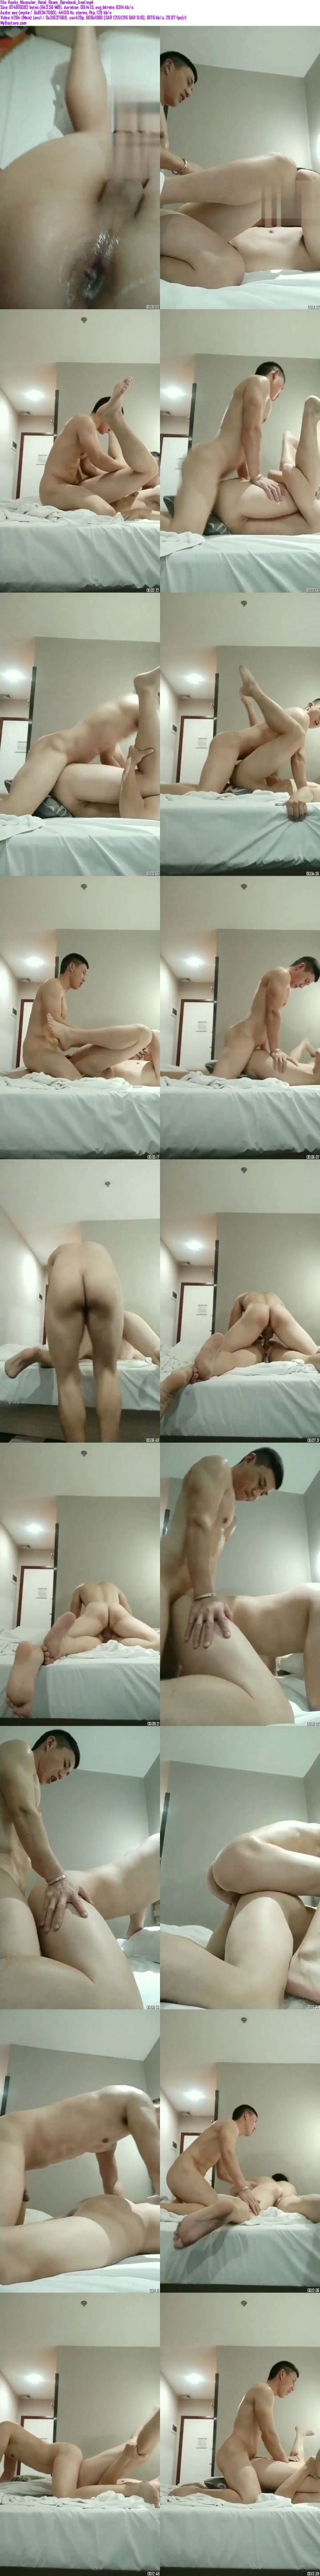 Chinese maleshow – Amateur Contribution – Hunky Muscular Hotel Room 肌肉大屌爷酒店无套操大屁股小帅